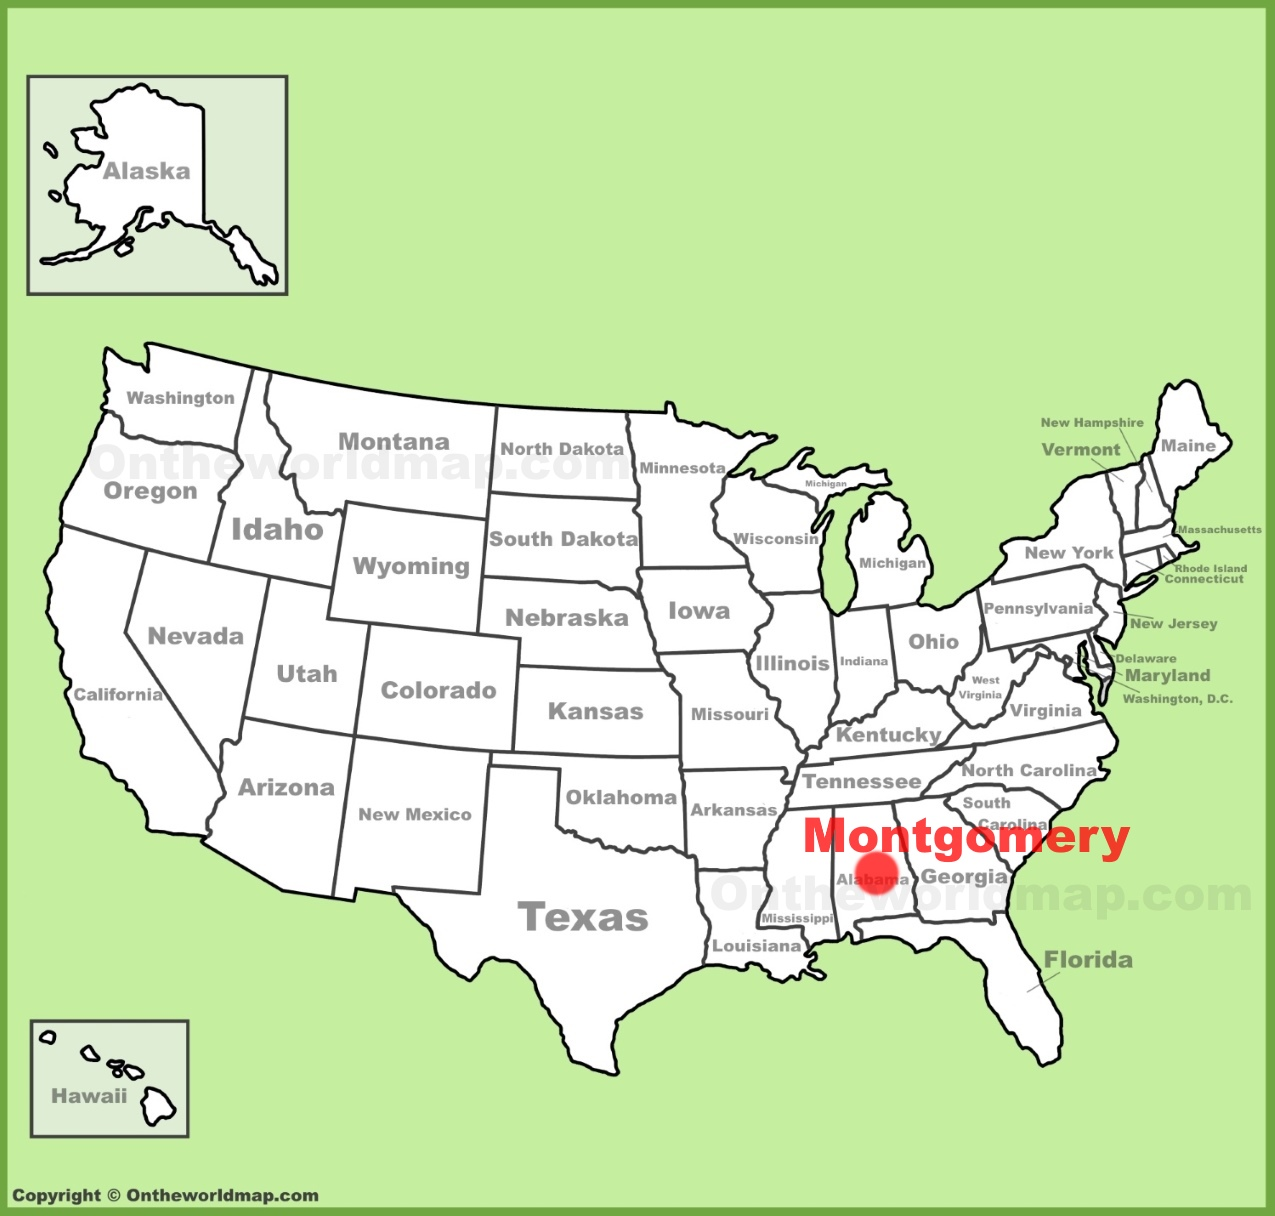 Montgomery location on the US Map